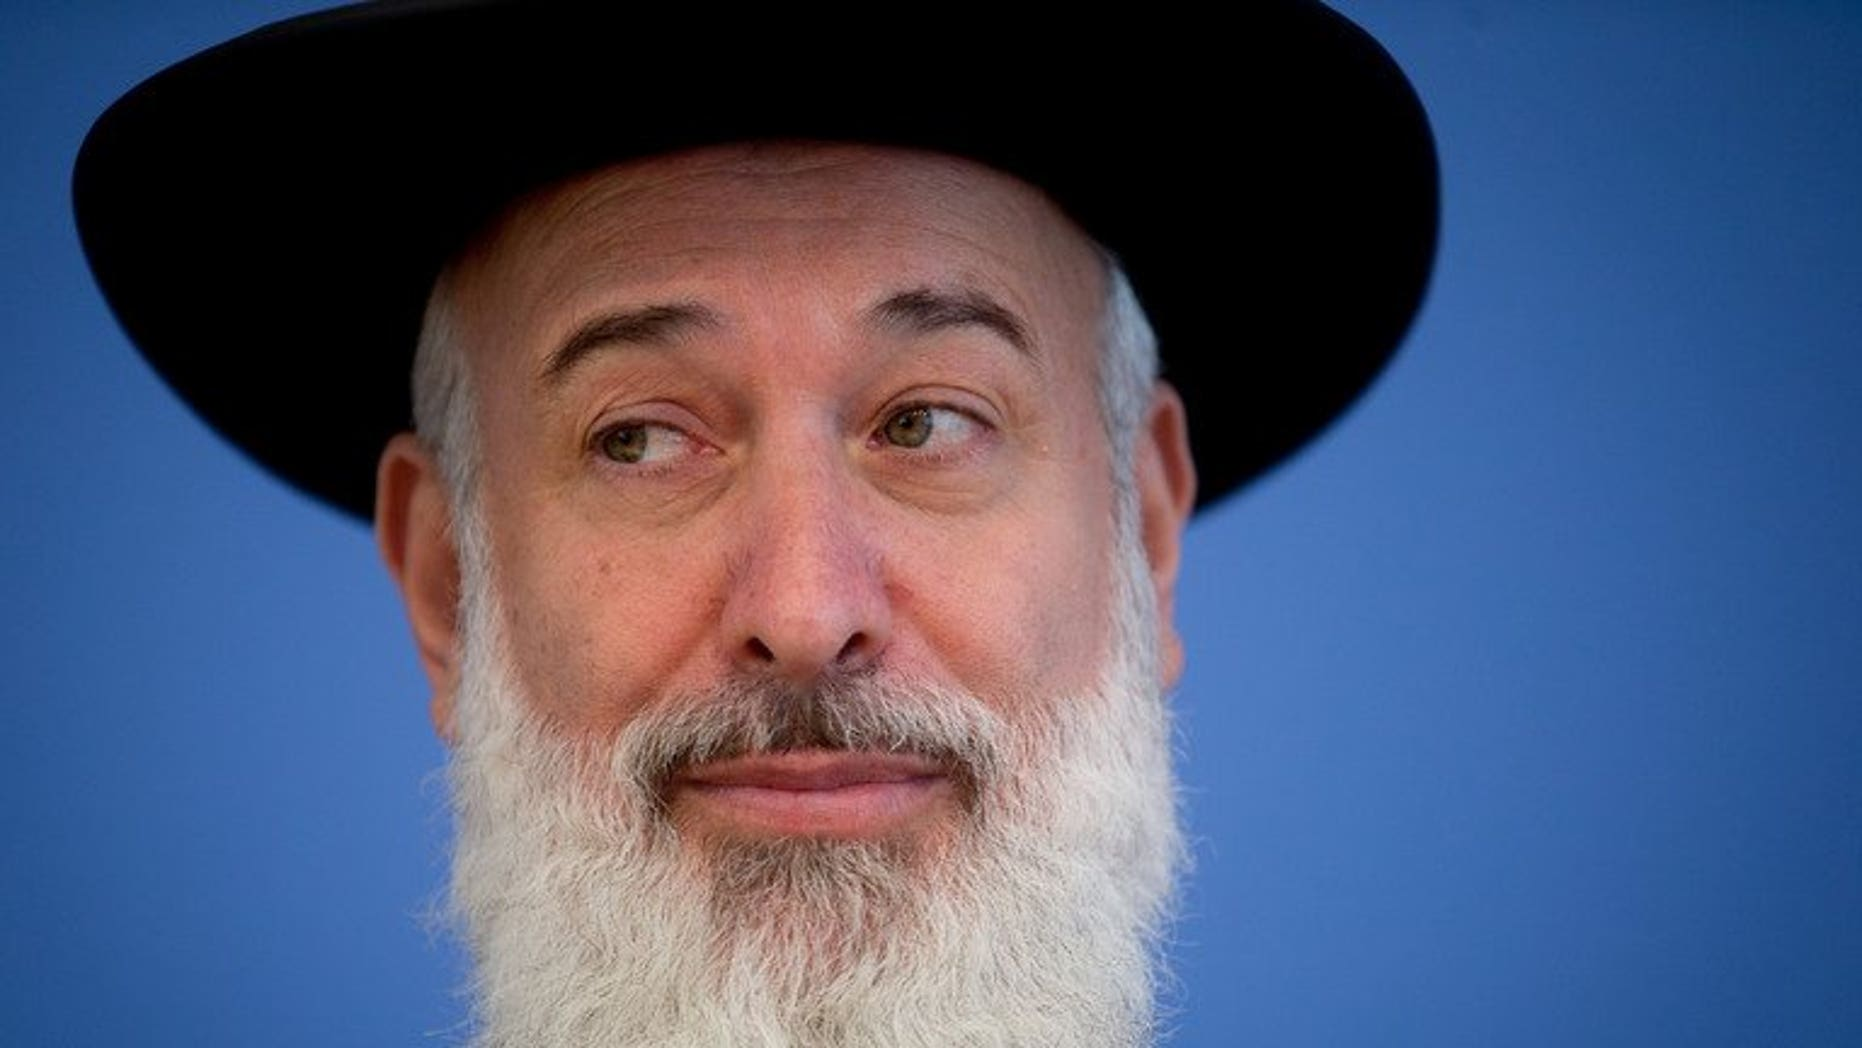 Israeli Chief Ashkenazi Rabbi Yona Metzger speaks, seen on August 21, 2012 in Berlin, Germany. Israel's chief Ashkenazi rabbi has been put under house arrest after a marathon grilling by detectives on suspicion of bribery, theft and breach of trust.